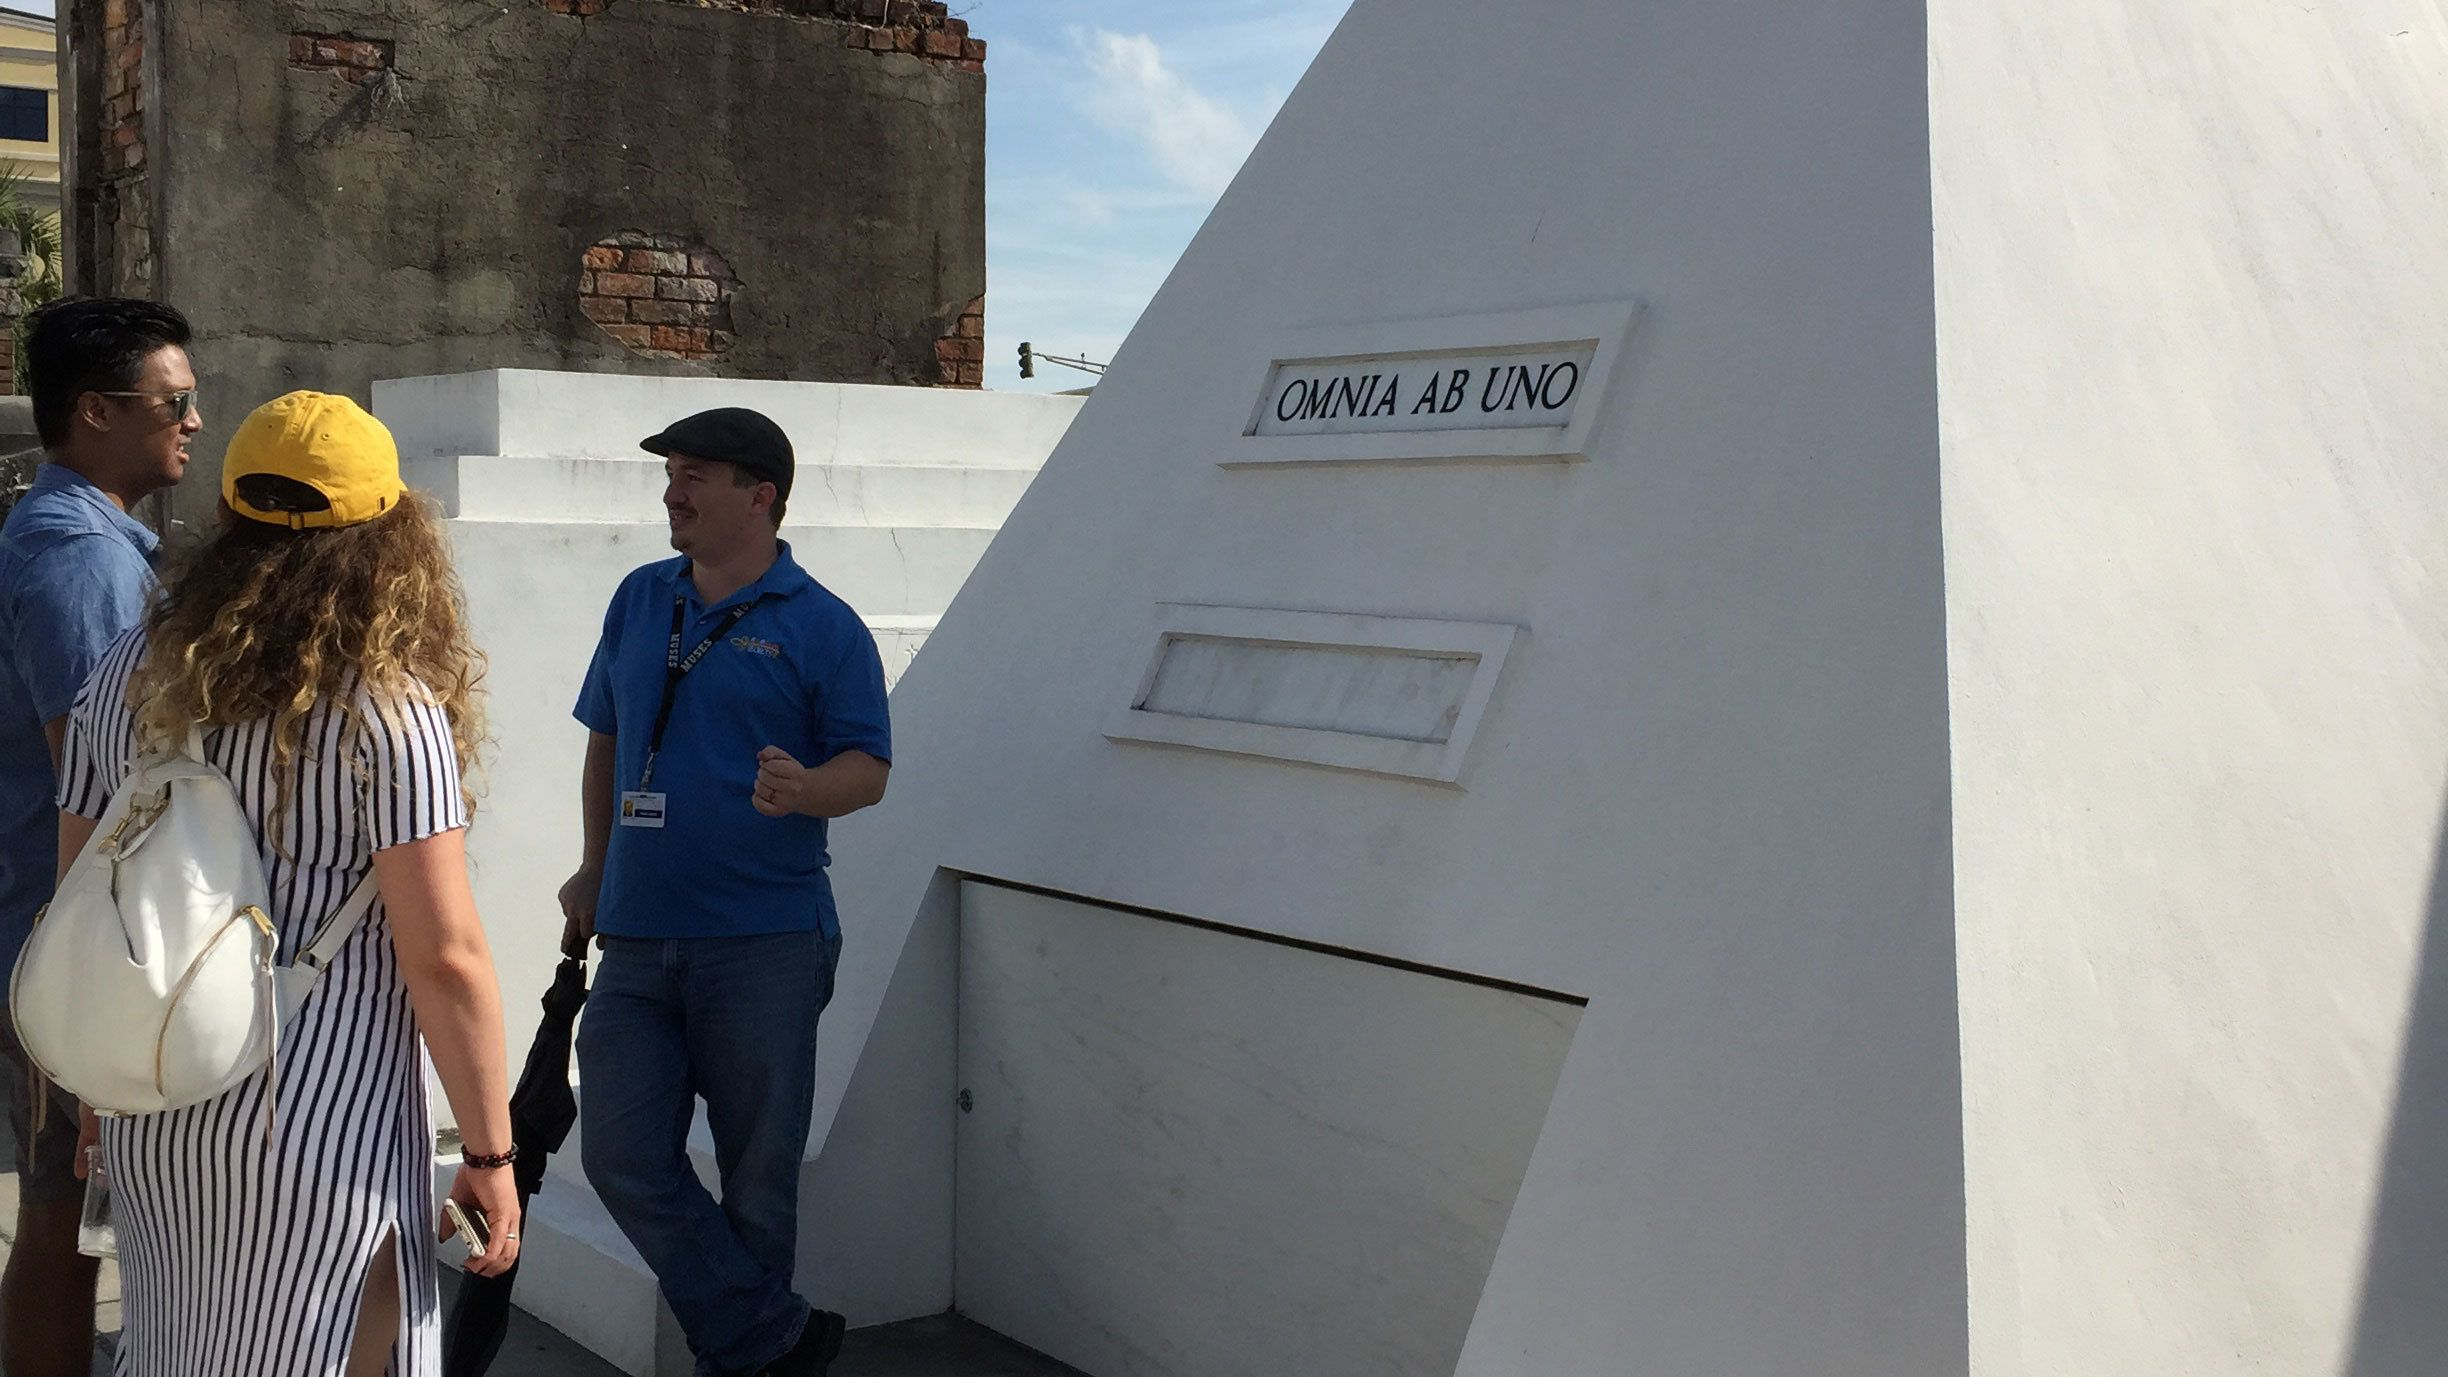 Tour guide leads couple through Saint Louis Cemetery